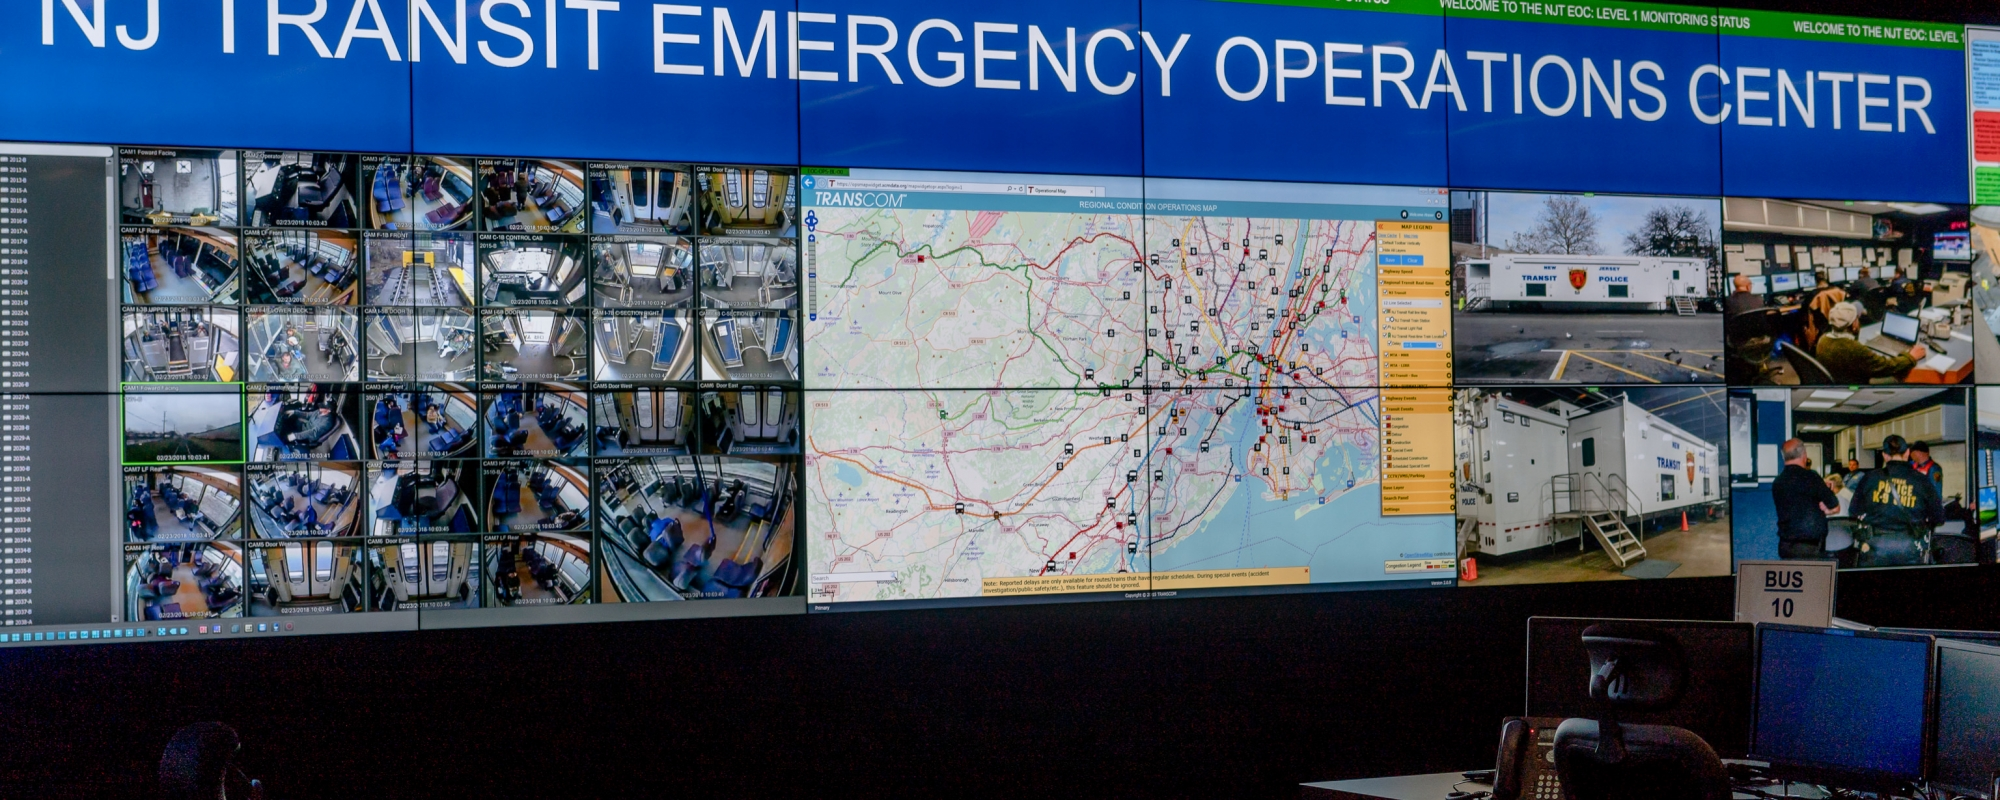 Emergency Operation Center